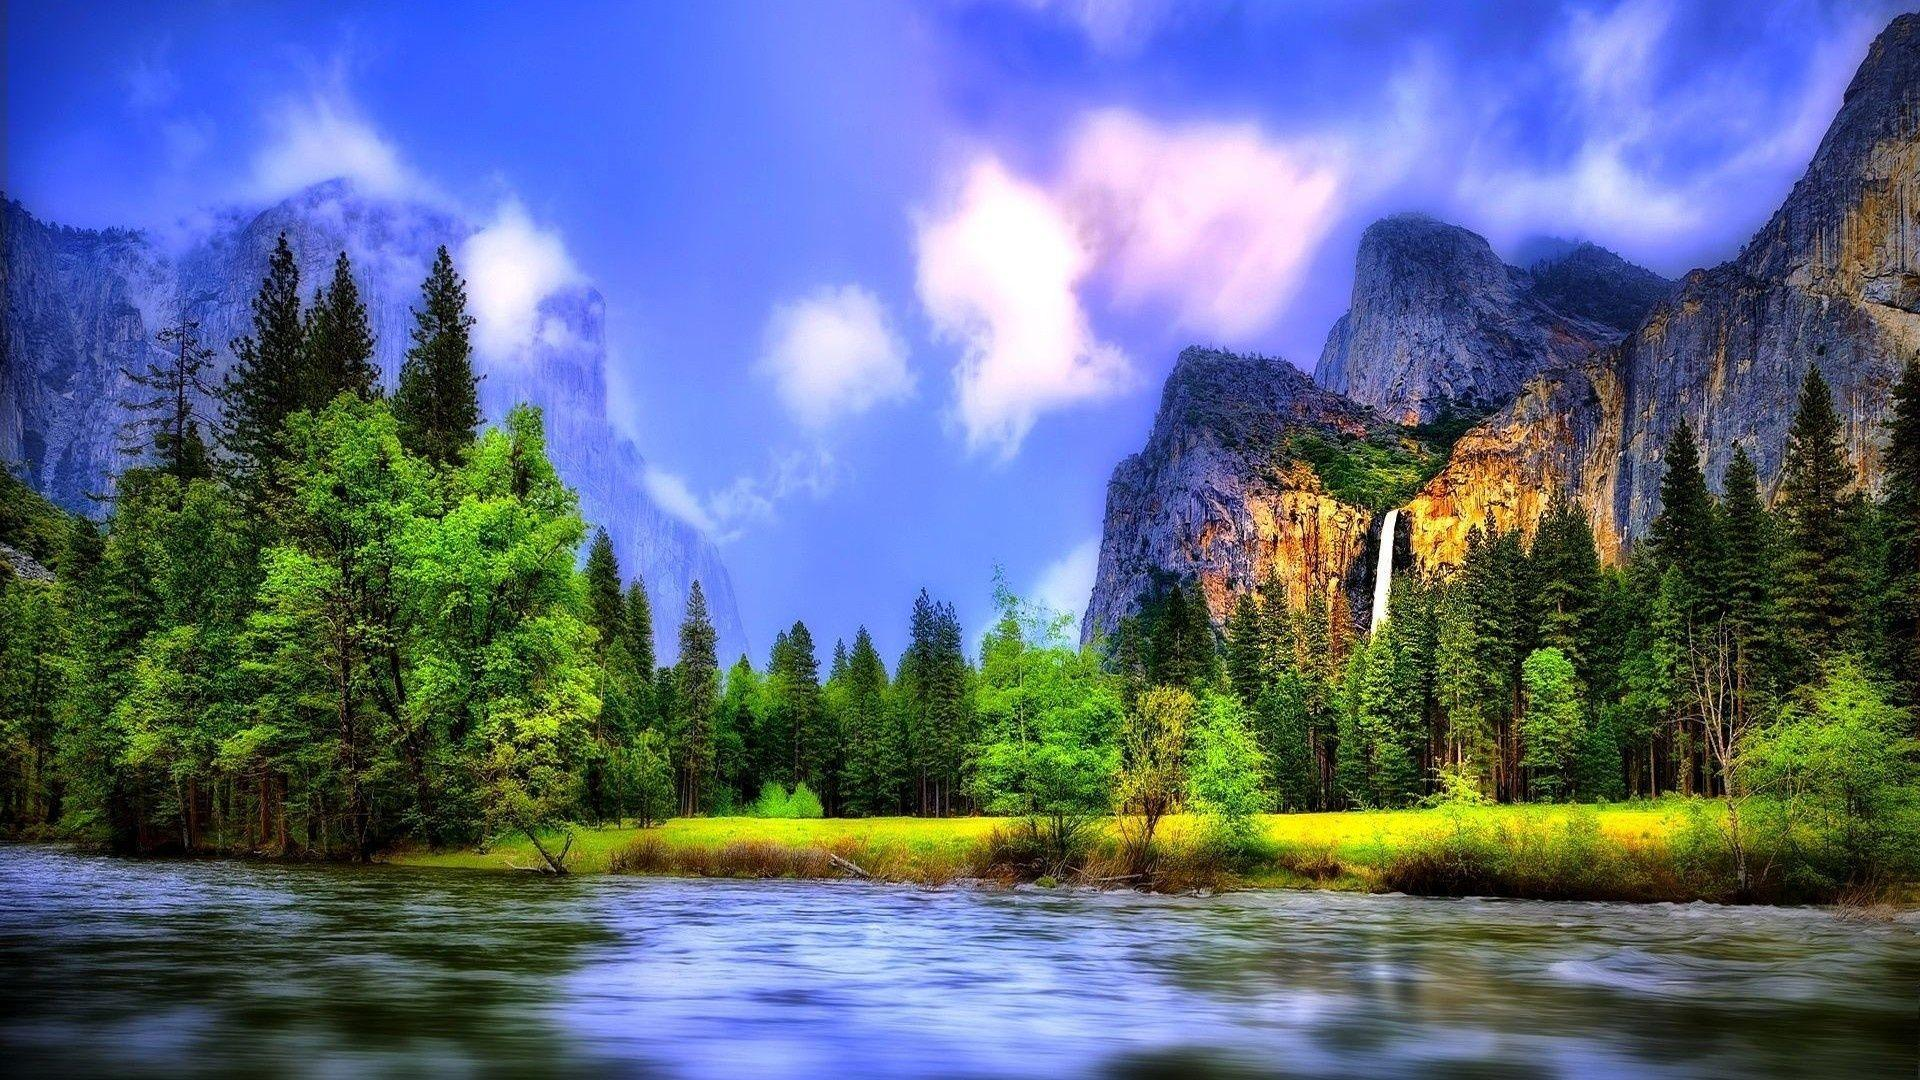 yosemite national park wallpapers, desktop wallpapers » GoodWP